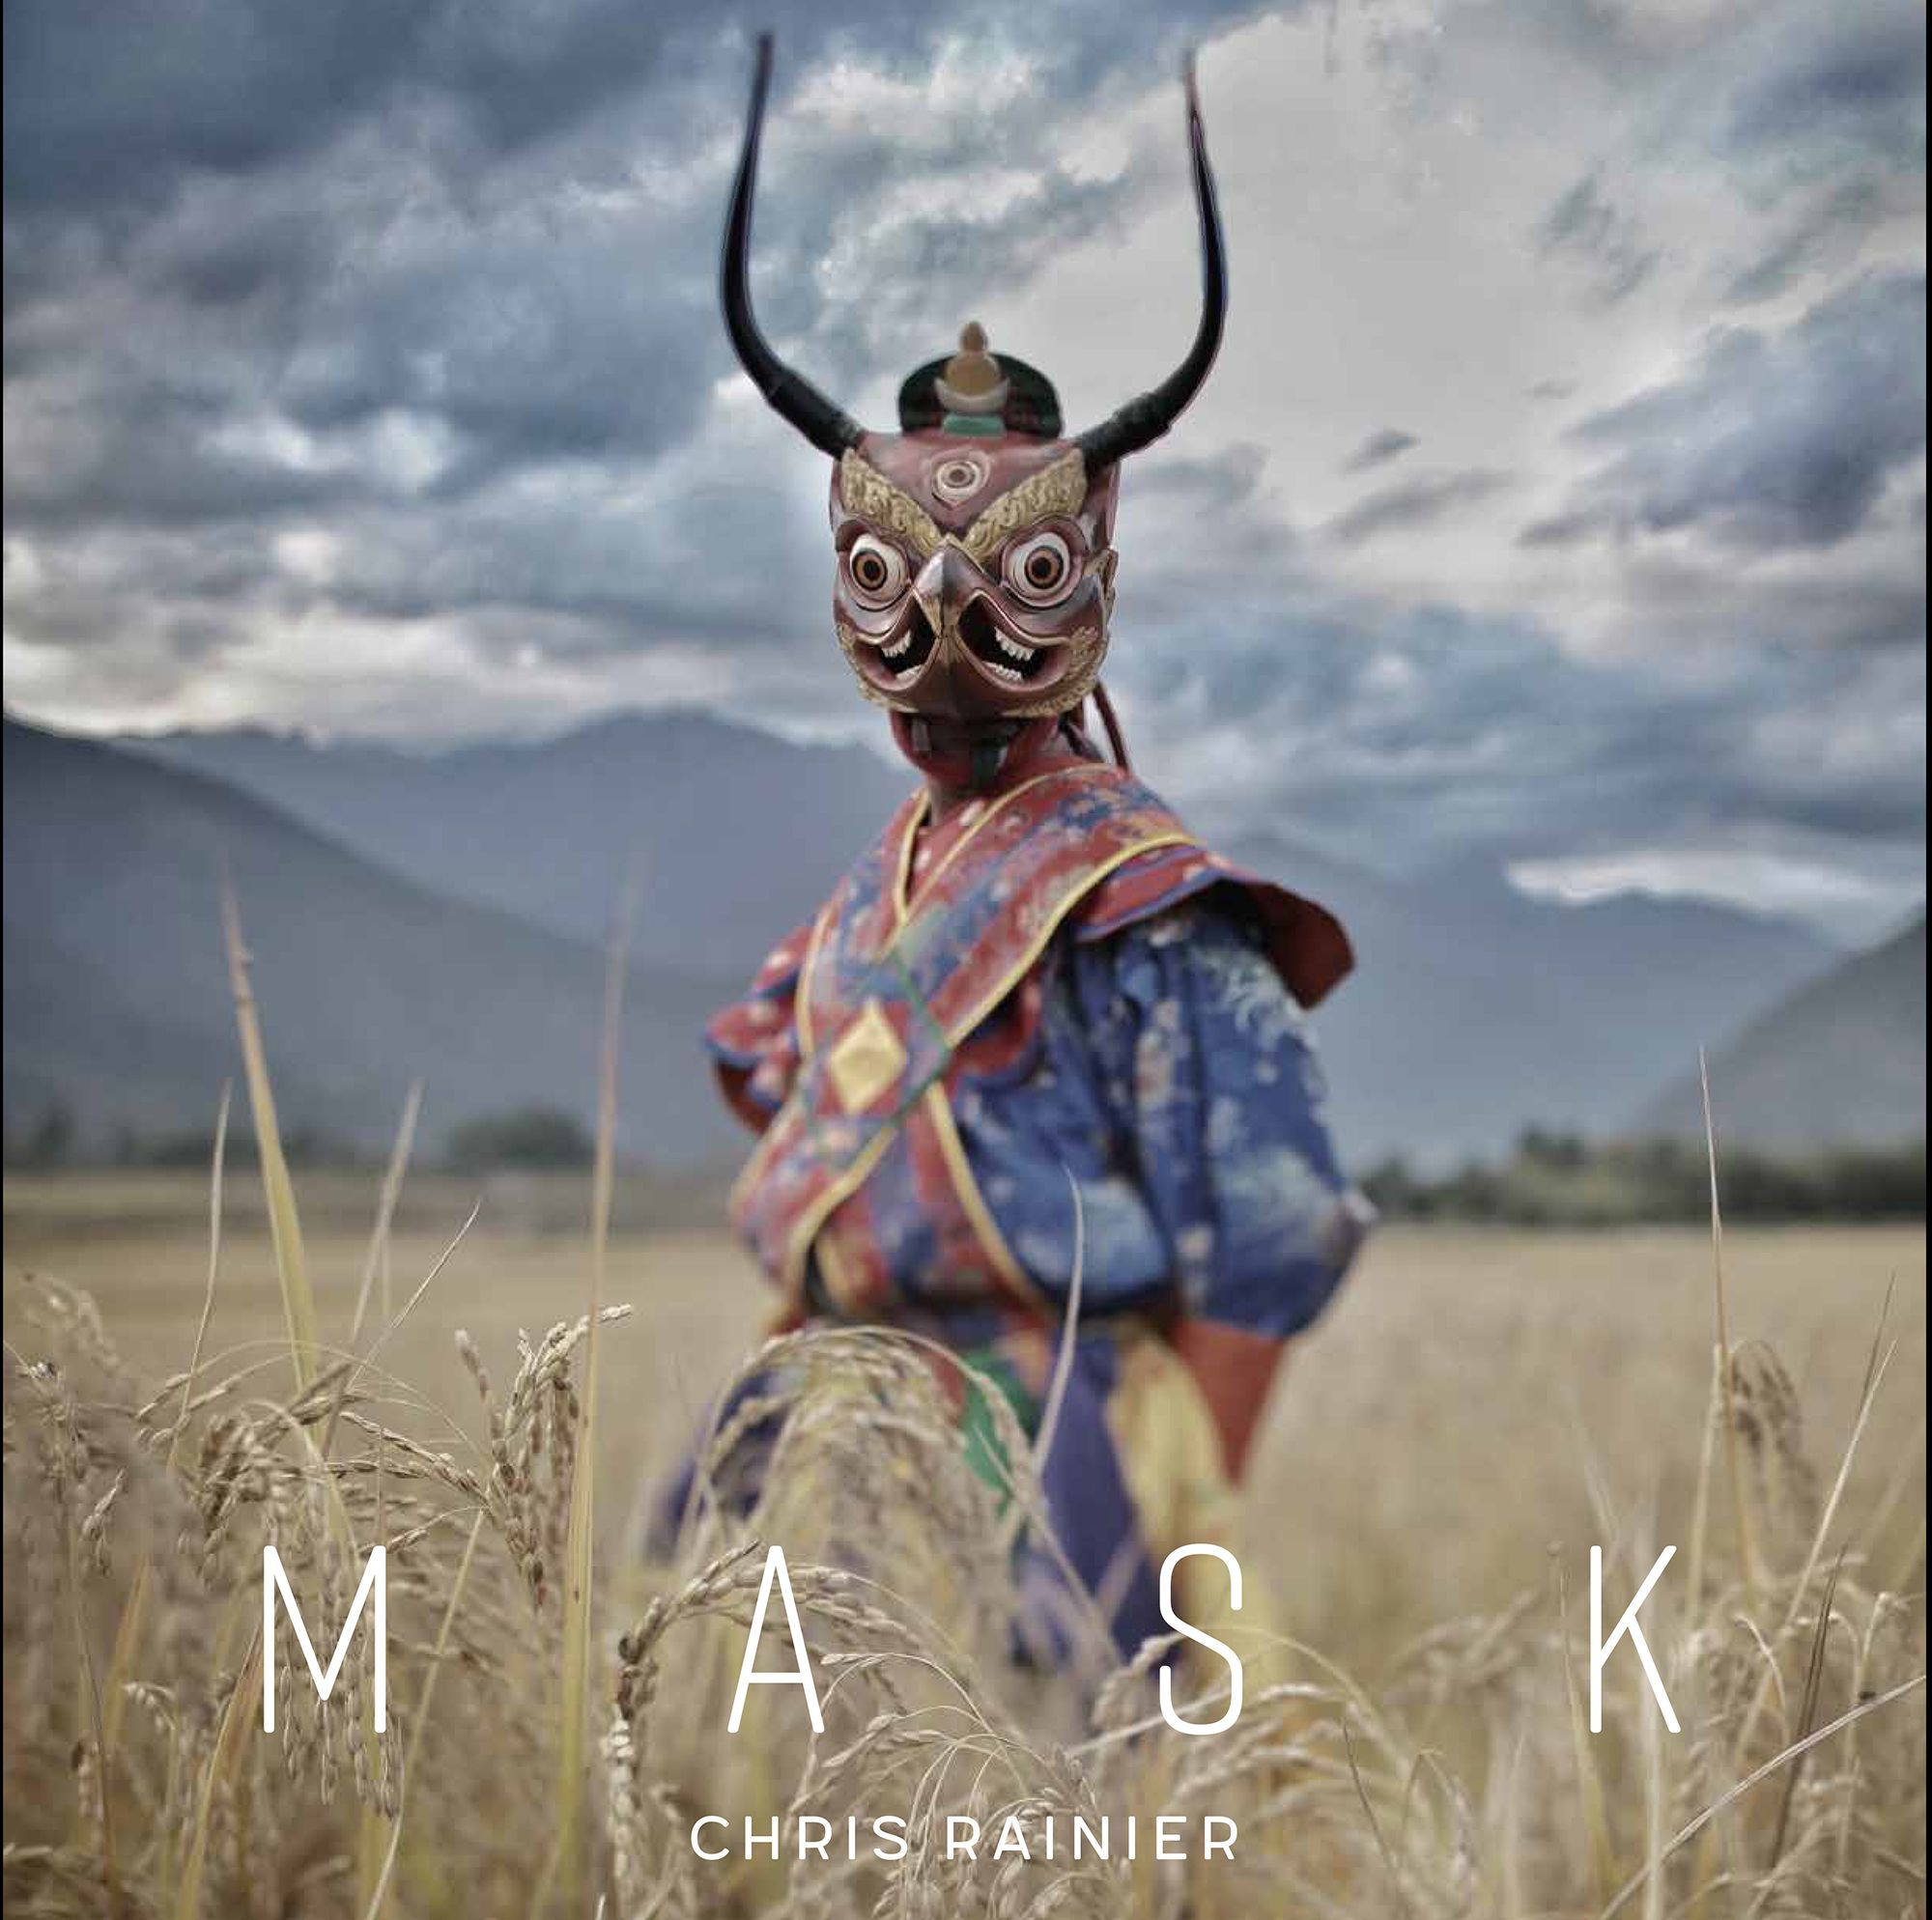 Mask front cover copy.jpg